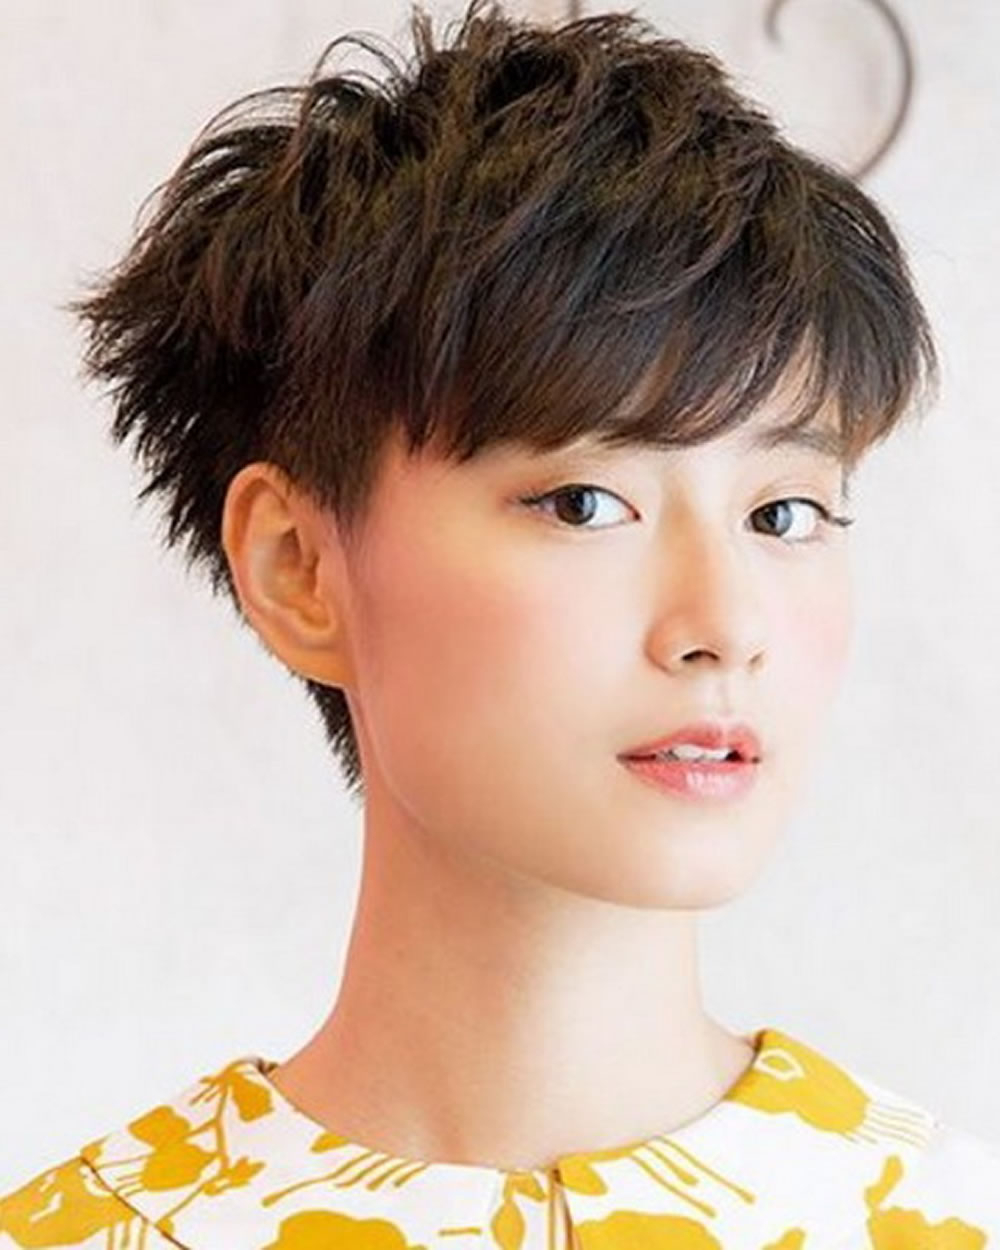 Well Liked Messy Pixie Asian Hairstyles Inside Pixie Haircuts For Asian Women (Gallery 2 of 20)